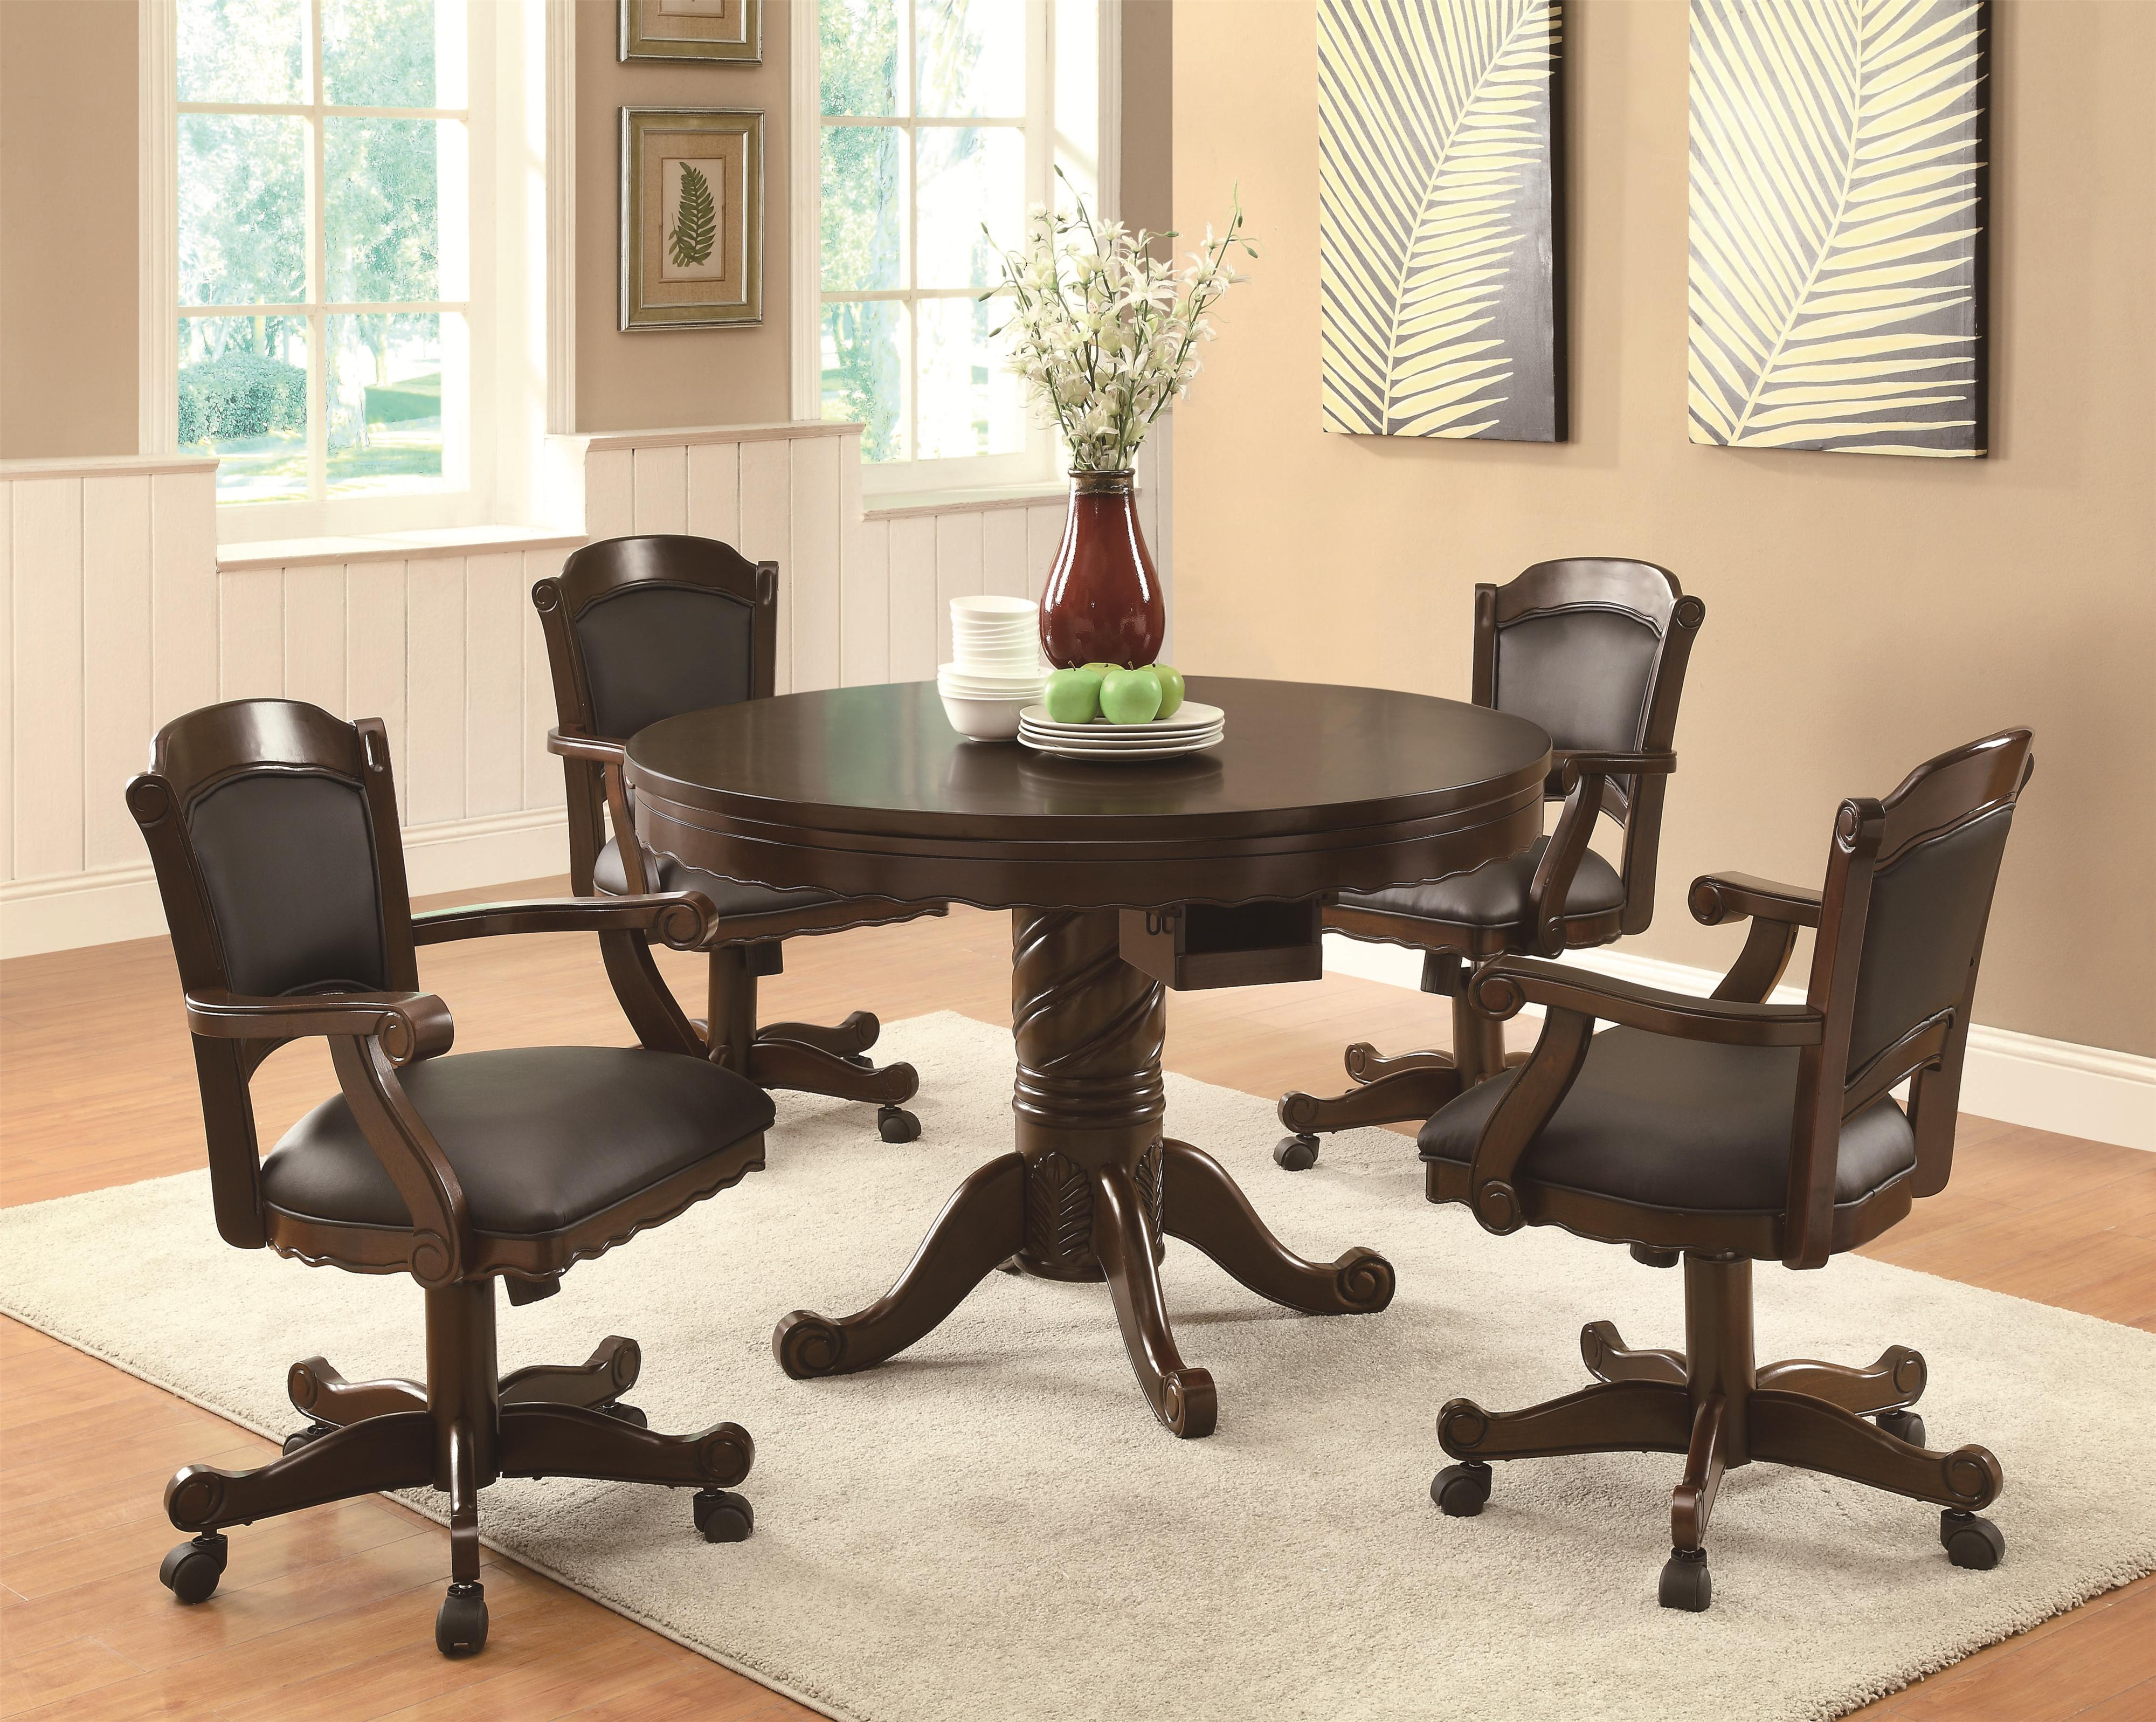 Game Table And Chairs Set Coaster Turk 3 In 1 Round Pedestal Game Table Coaster Fine Furniture